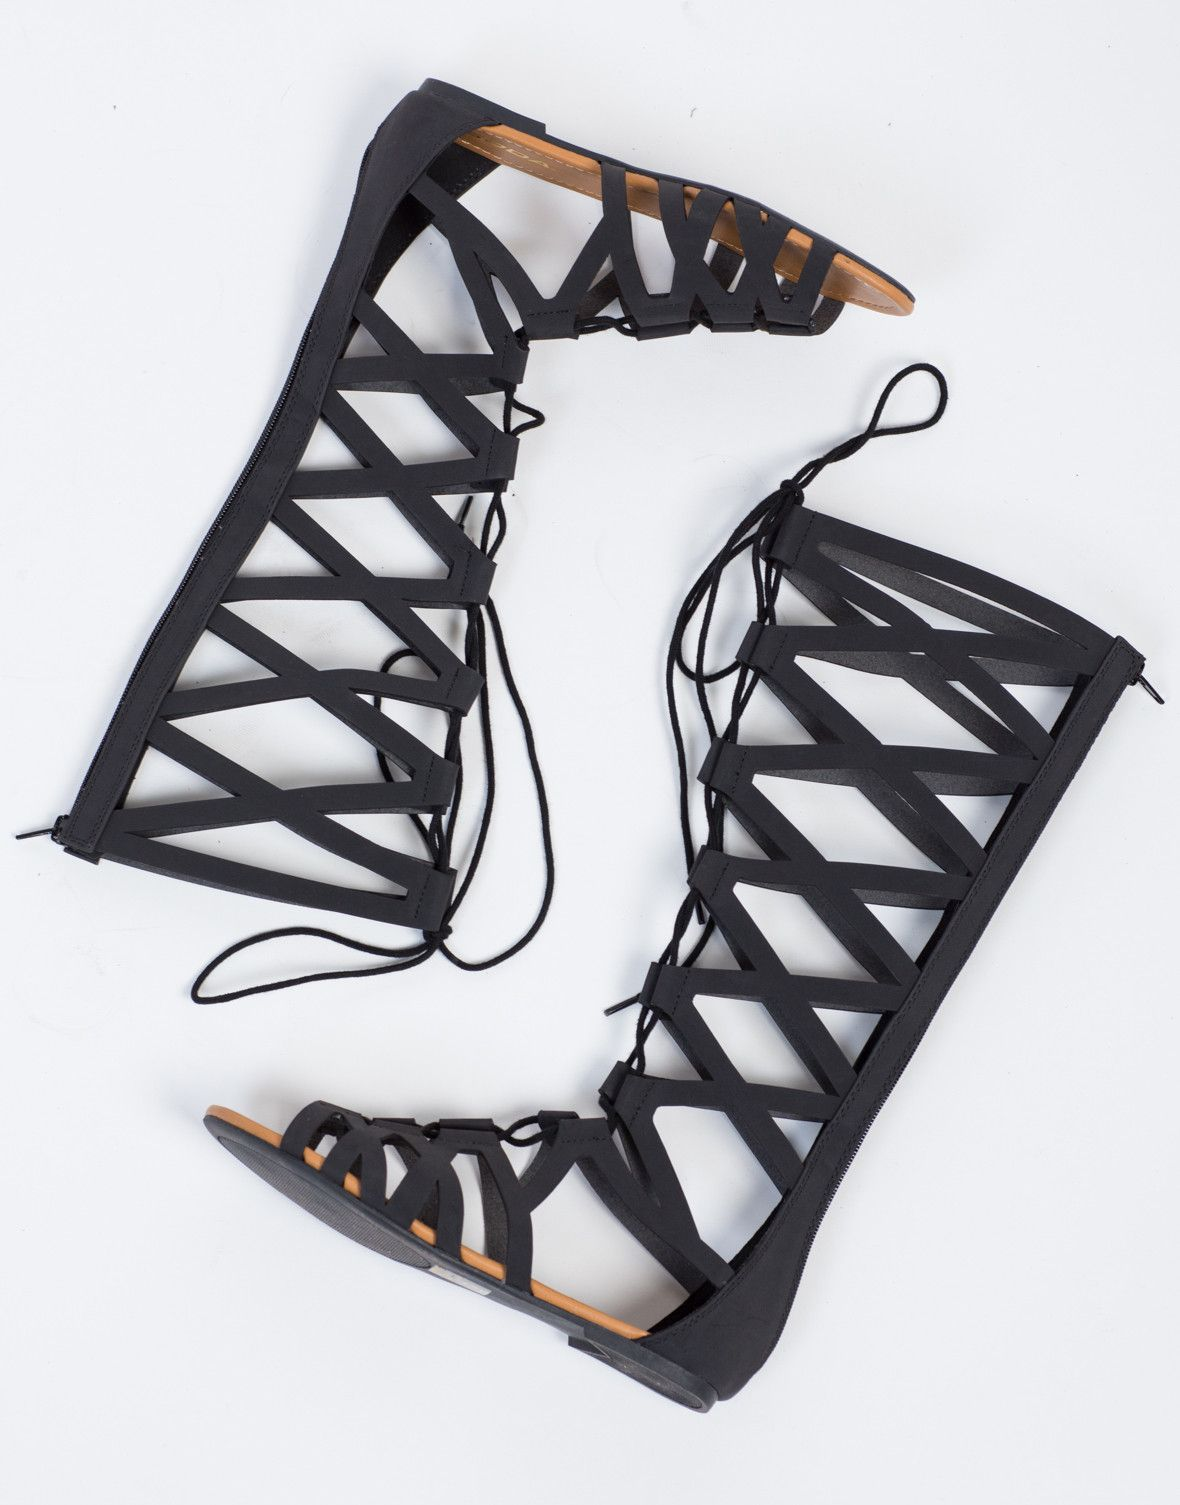 Gladiator sandals town shoes - Tall Lace Up Gladiator Sandals These Are Such Statement Shoes I Love Them